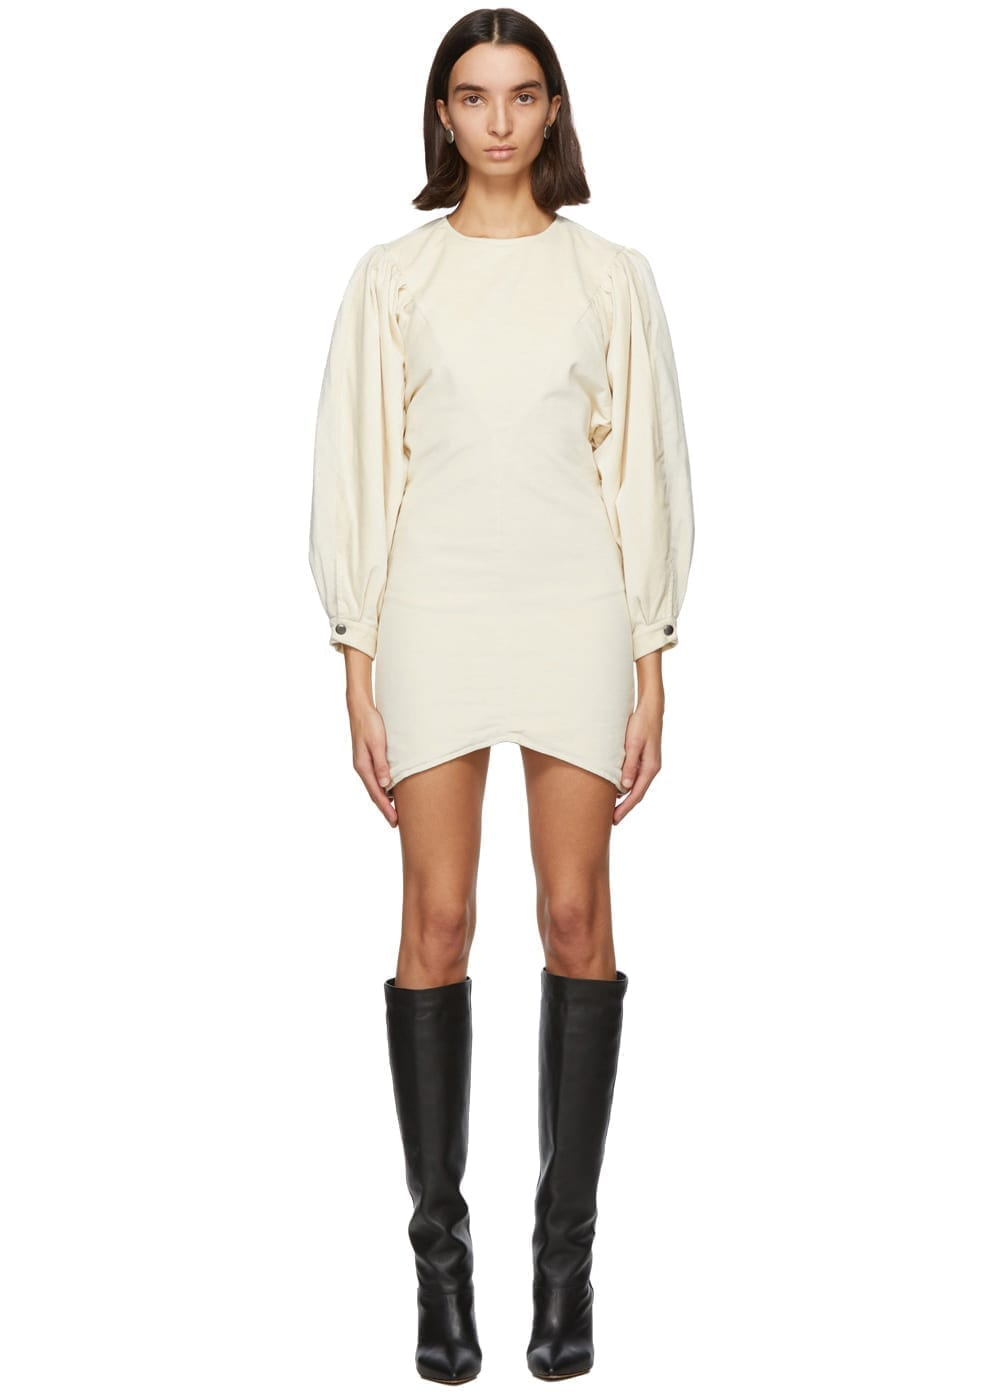 ISABEL MARANT Off-White Dilavio Dress